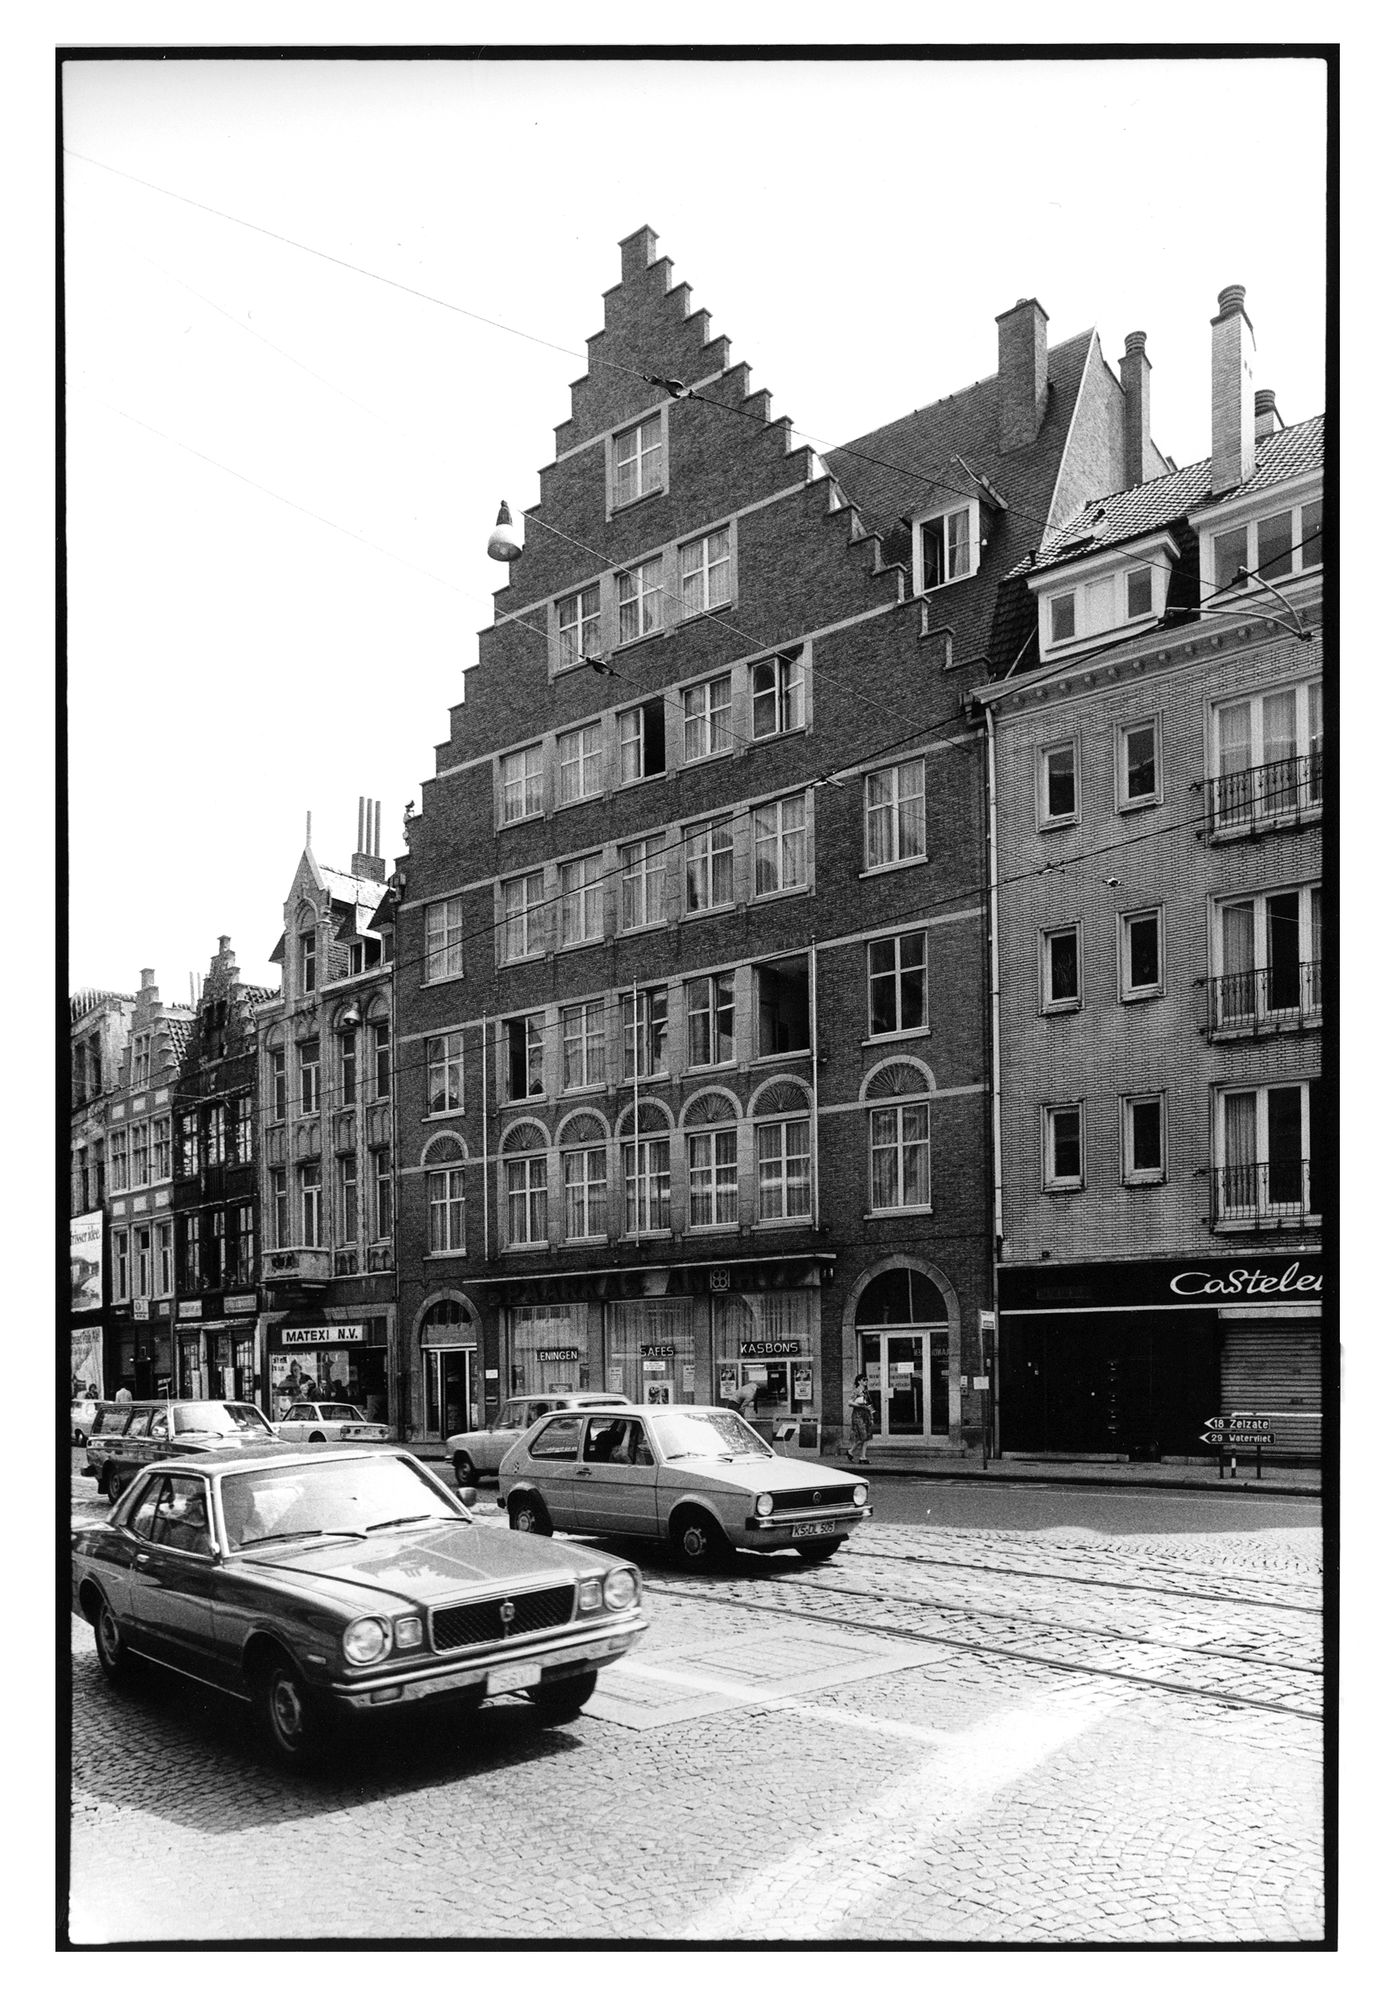 Cataloniëstraat12_1979.jpg